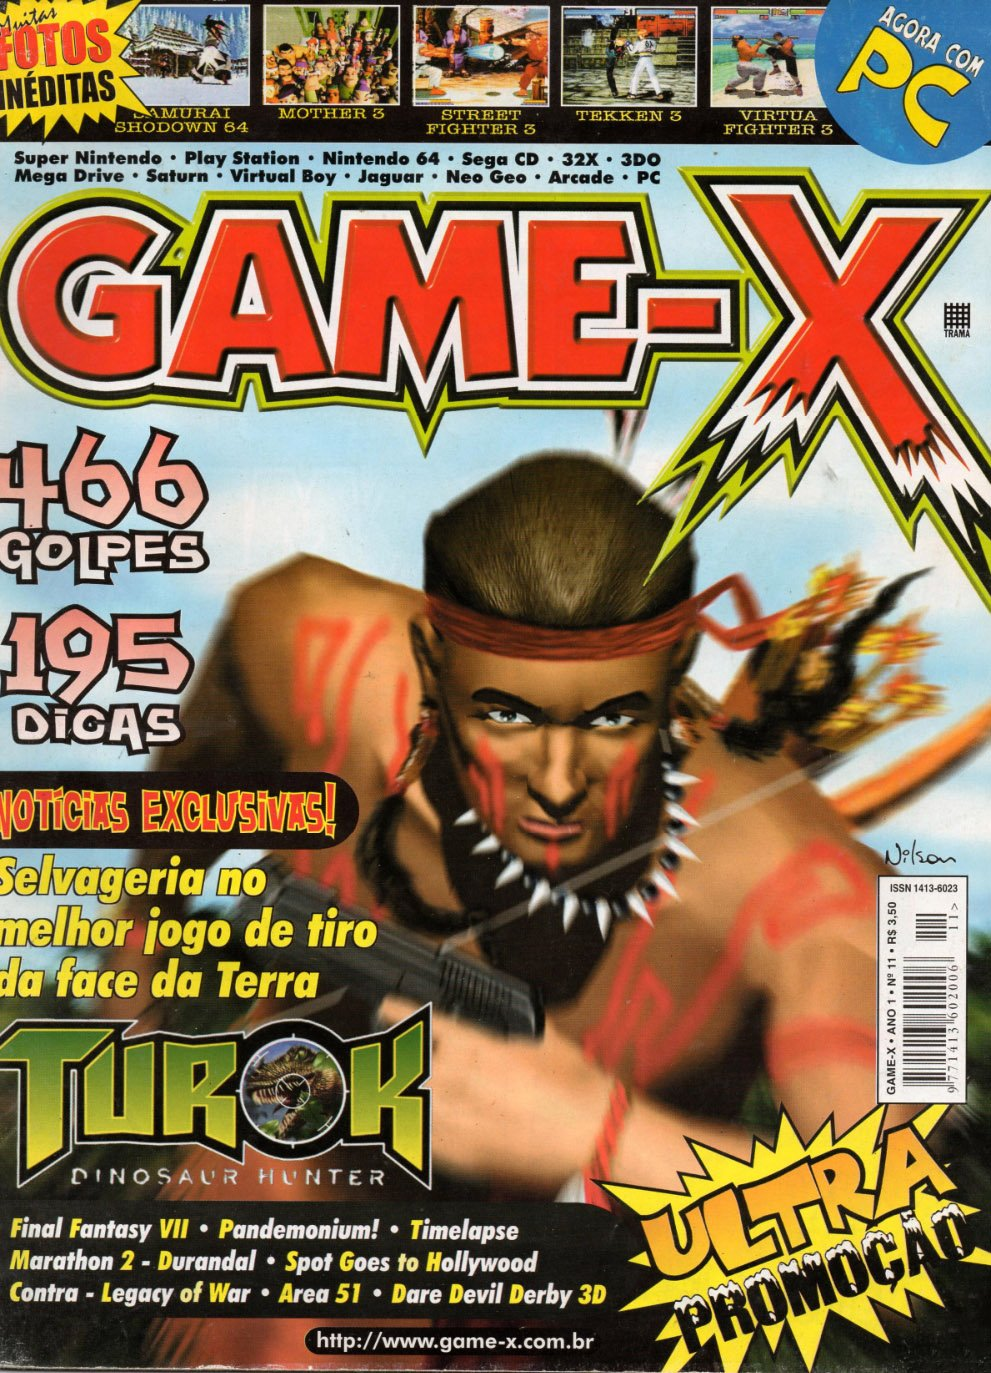 Game-X Issue 11